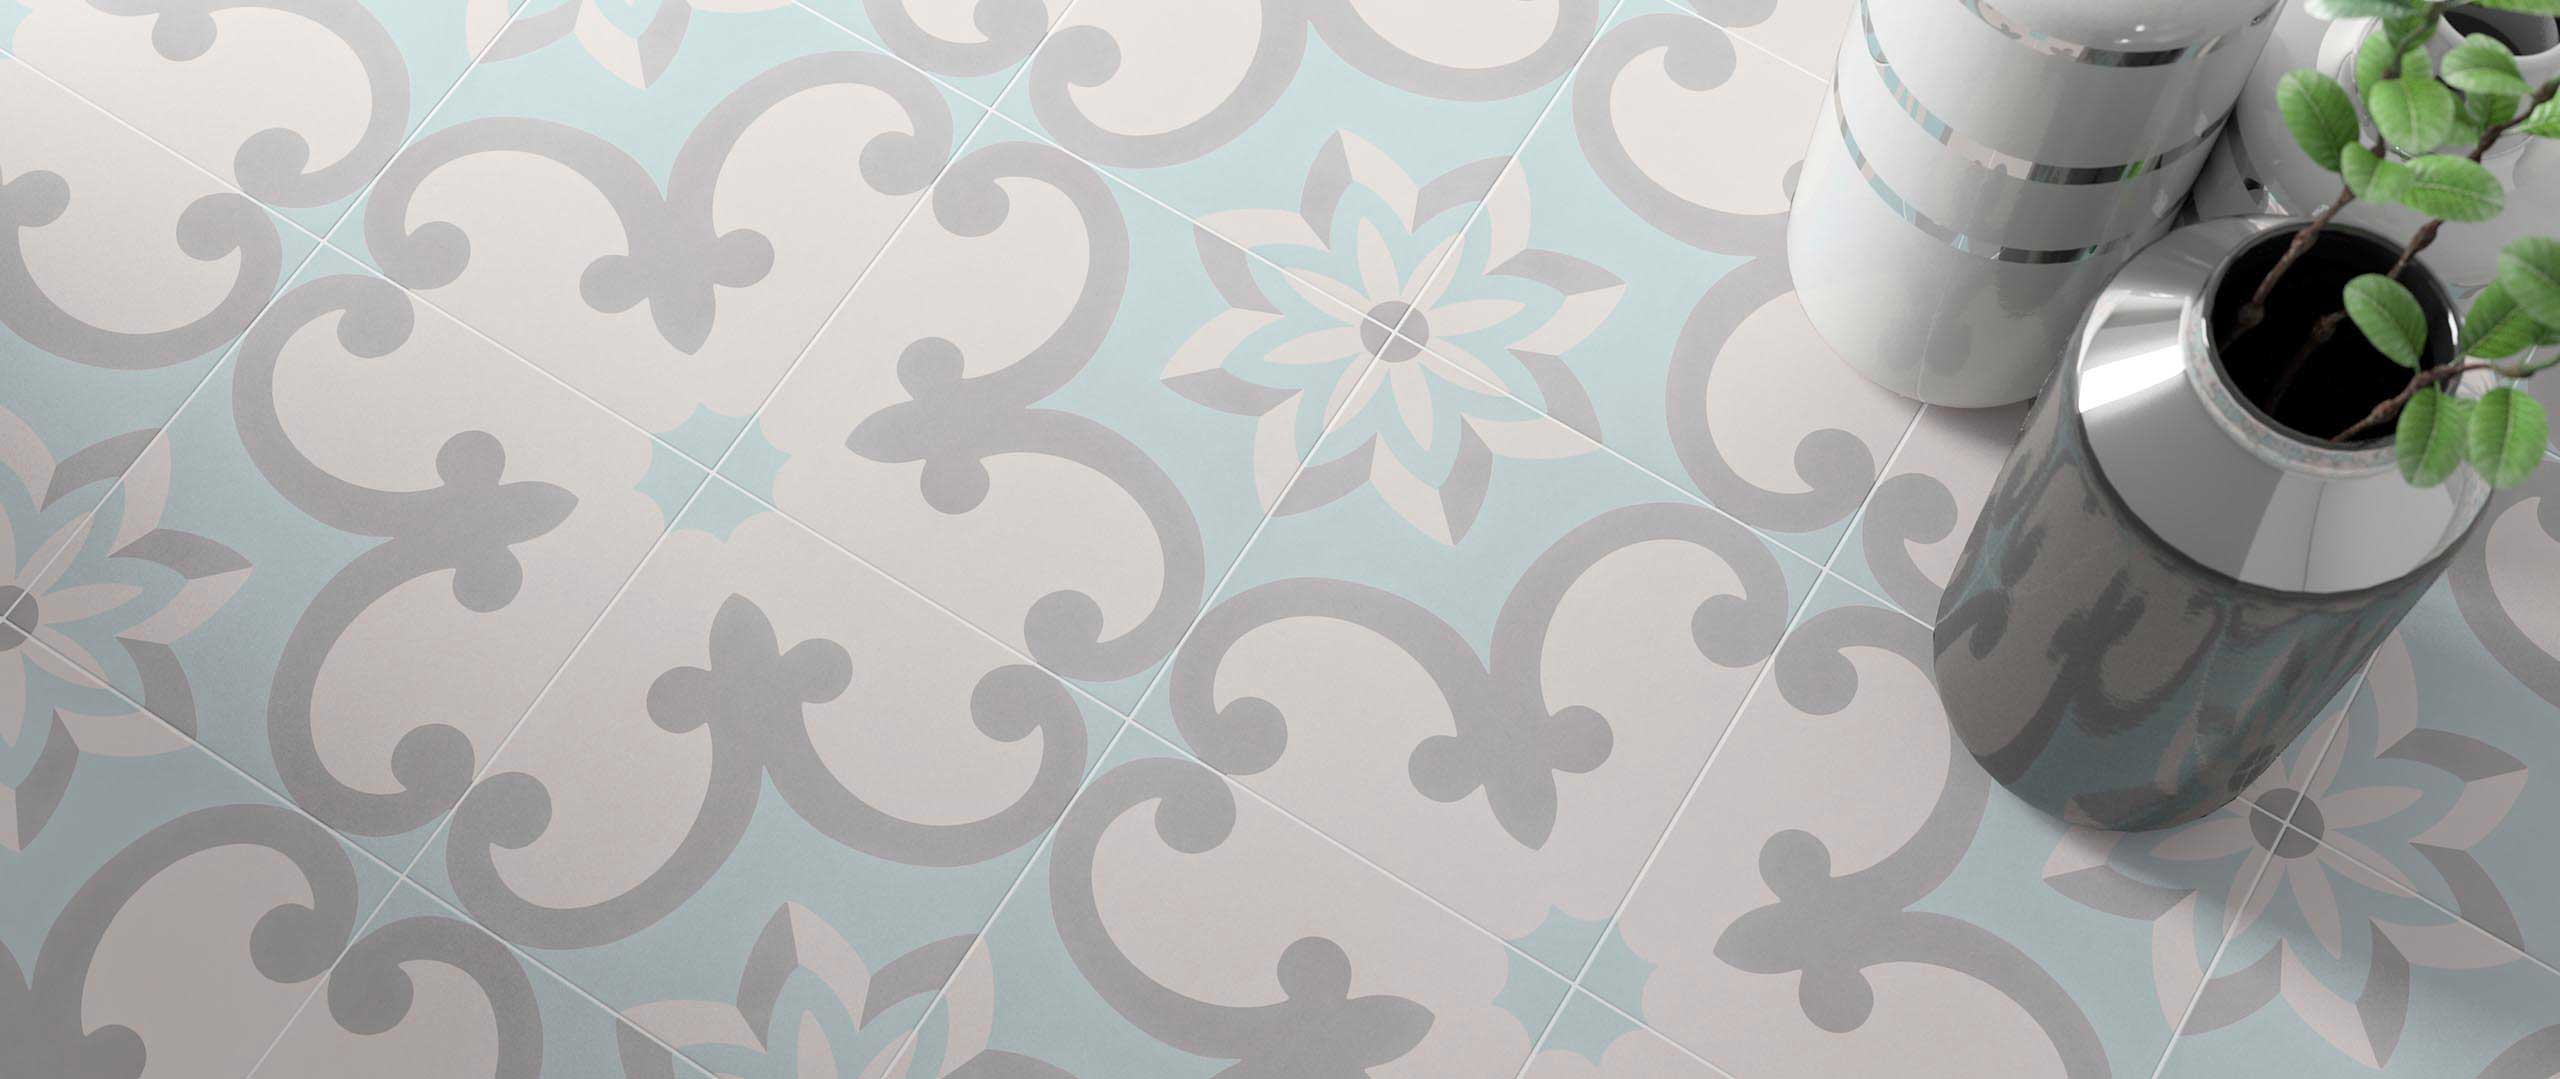 Cement Floor Tiles Tradition Decor 2 On Designer Pages